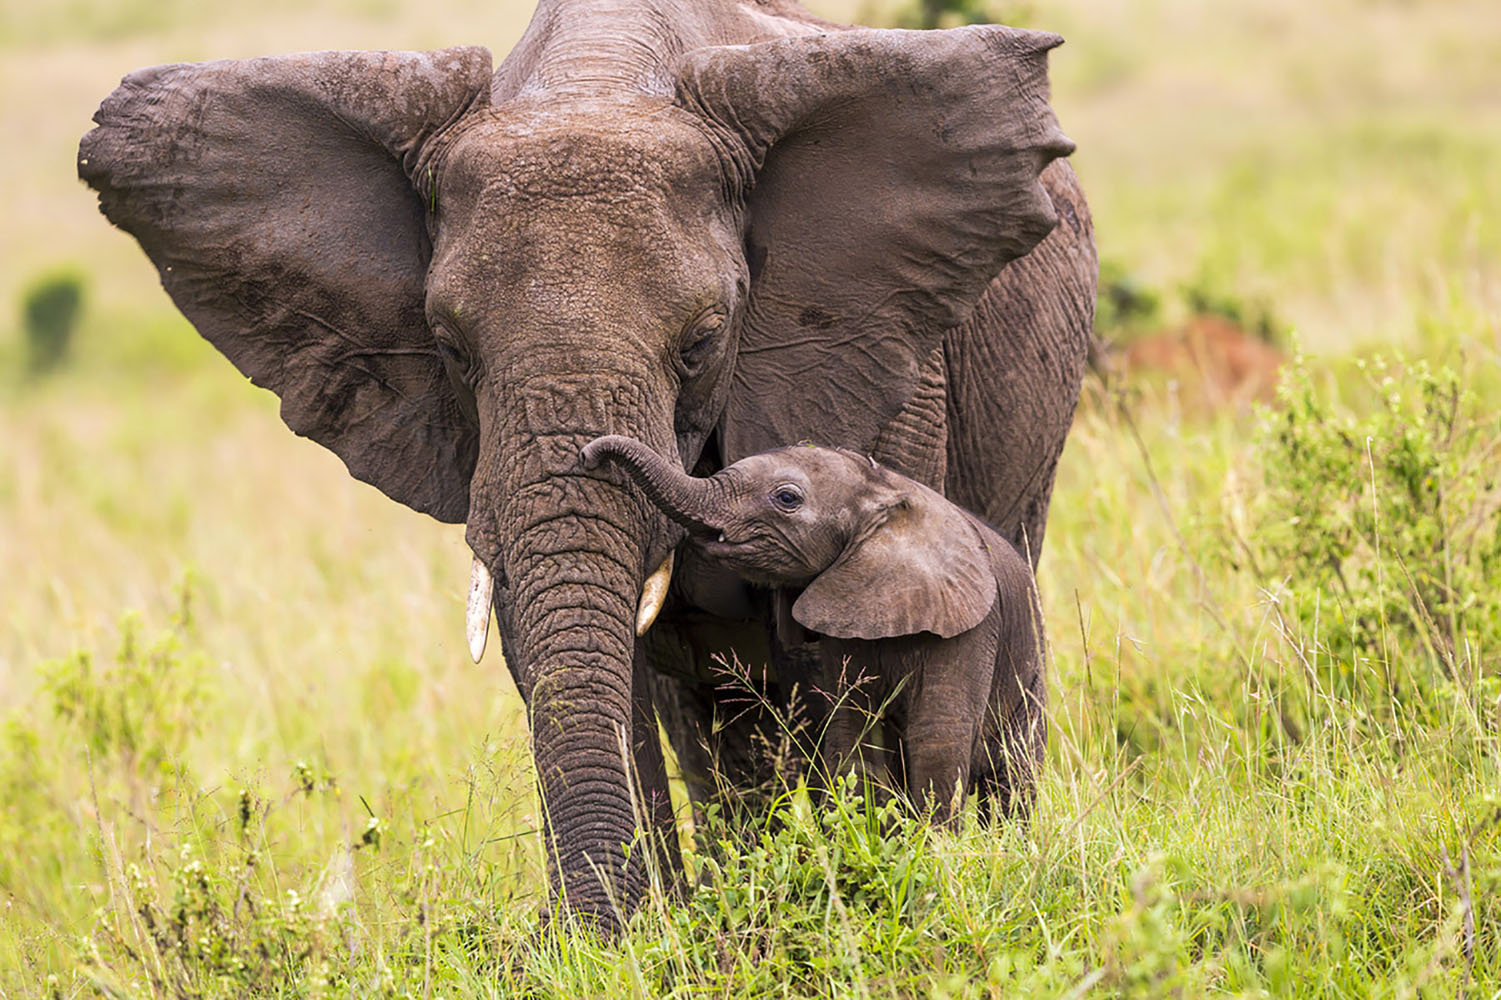 A mother and baby African elephant.